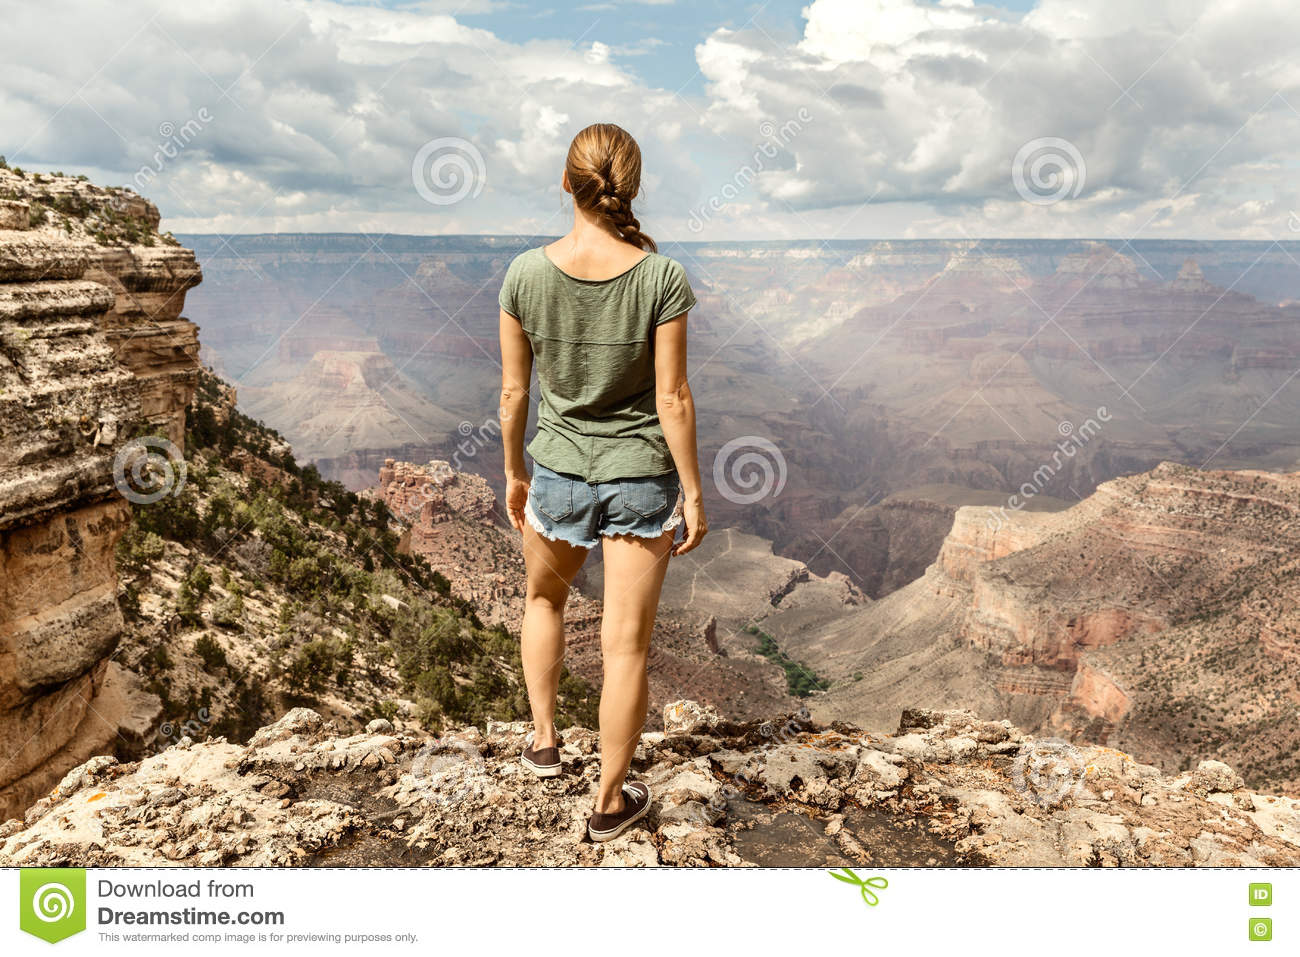 """grand canyon single women Park superintendent dave uberuaga, who opposes new grand canyon  construction projects  renae yellowhorse adds, """"my mother was told by my  great-grandmother,  on one side are investors, local business people and  some native."""